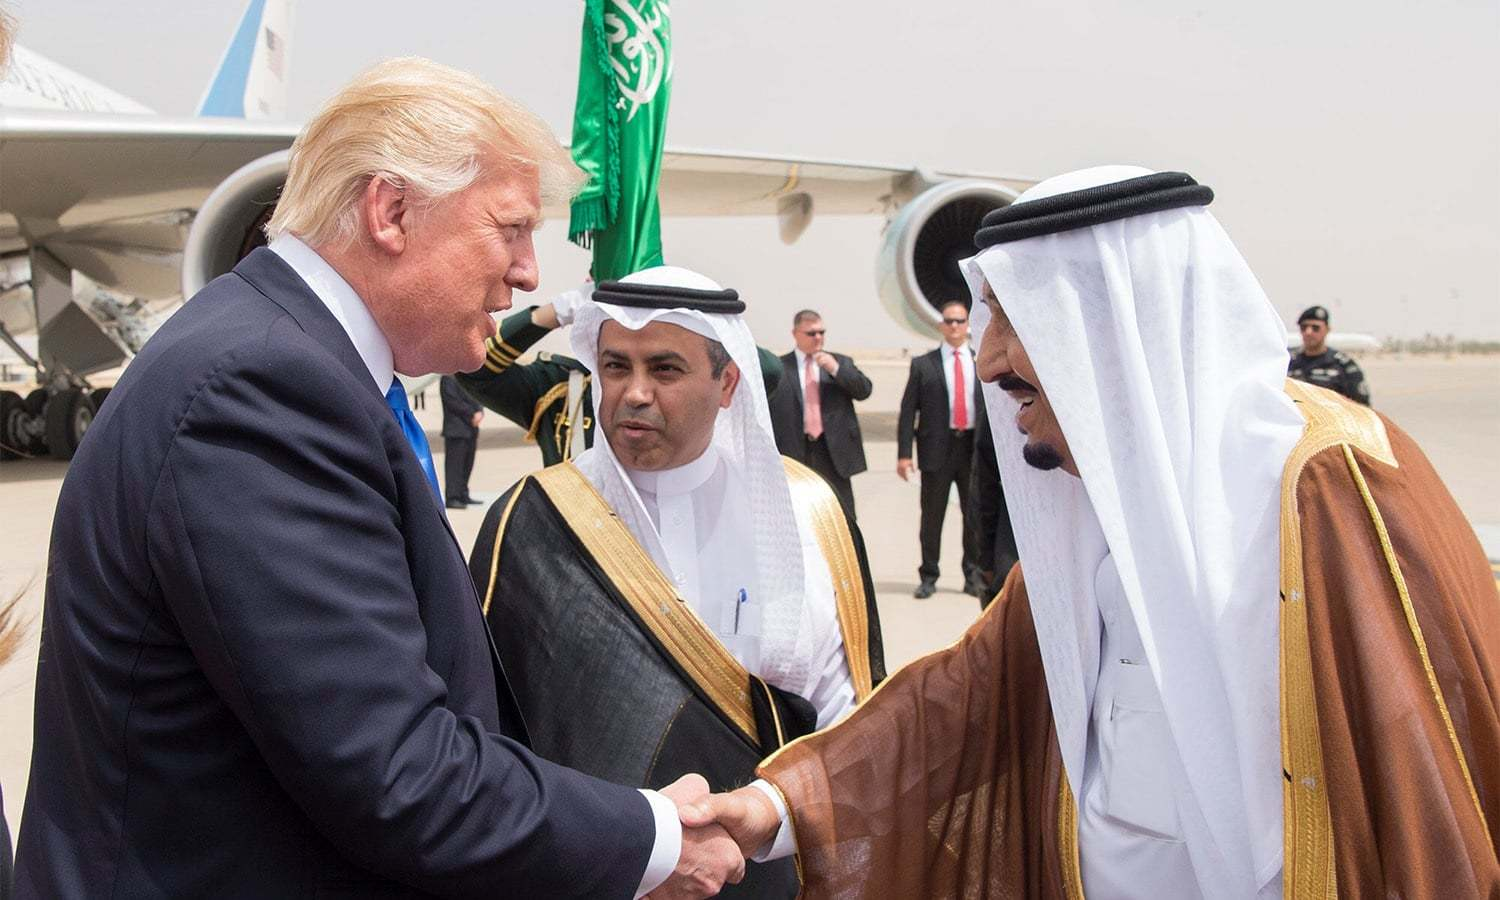 King Salman welcomes Trump's firm approach to Iran